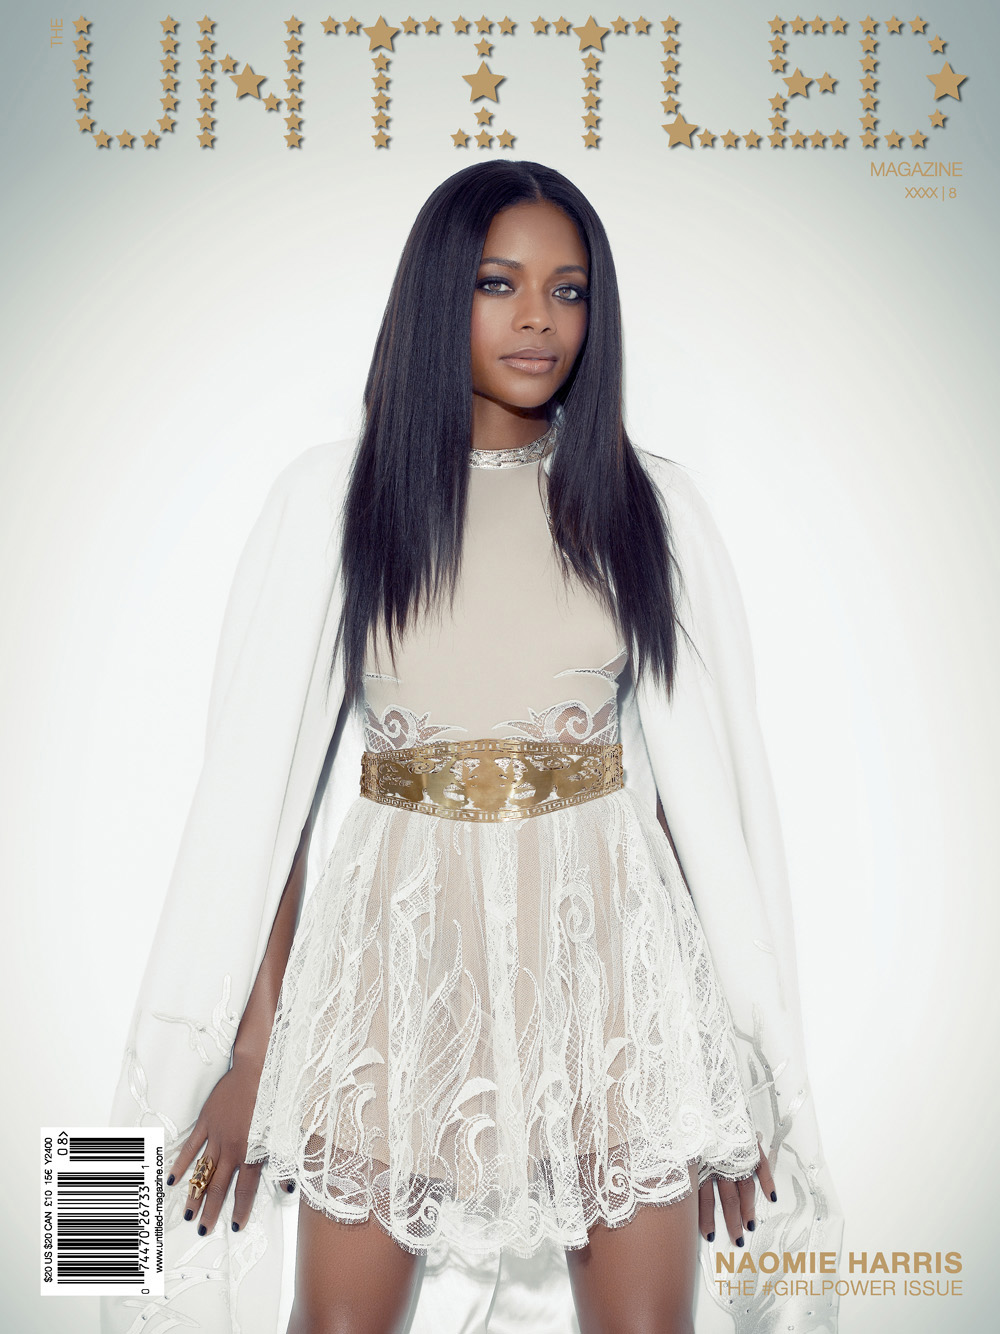 The-Untitled-Magazine-Issue-8-Naomie-Harris-Cover-LR.jpg